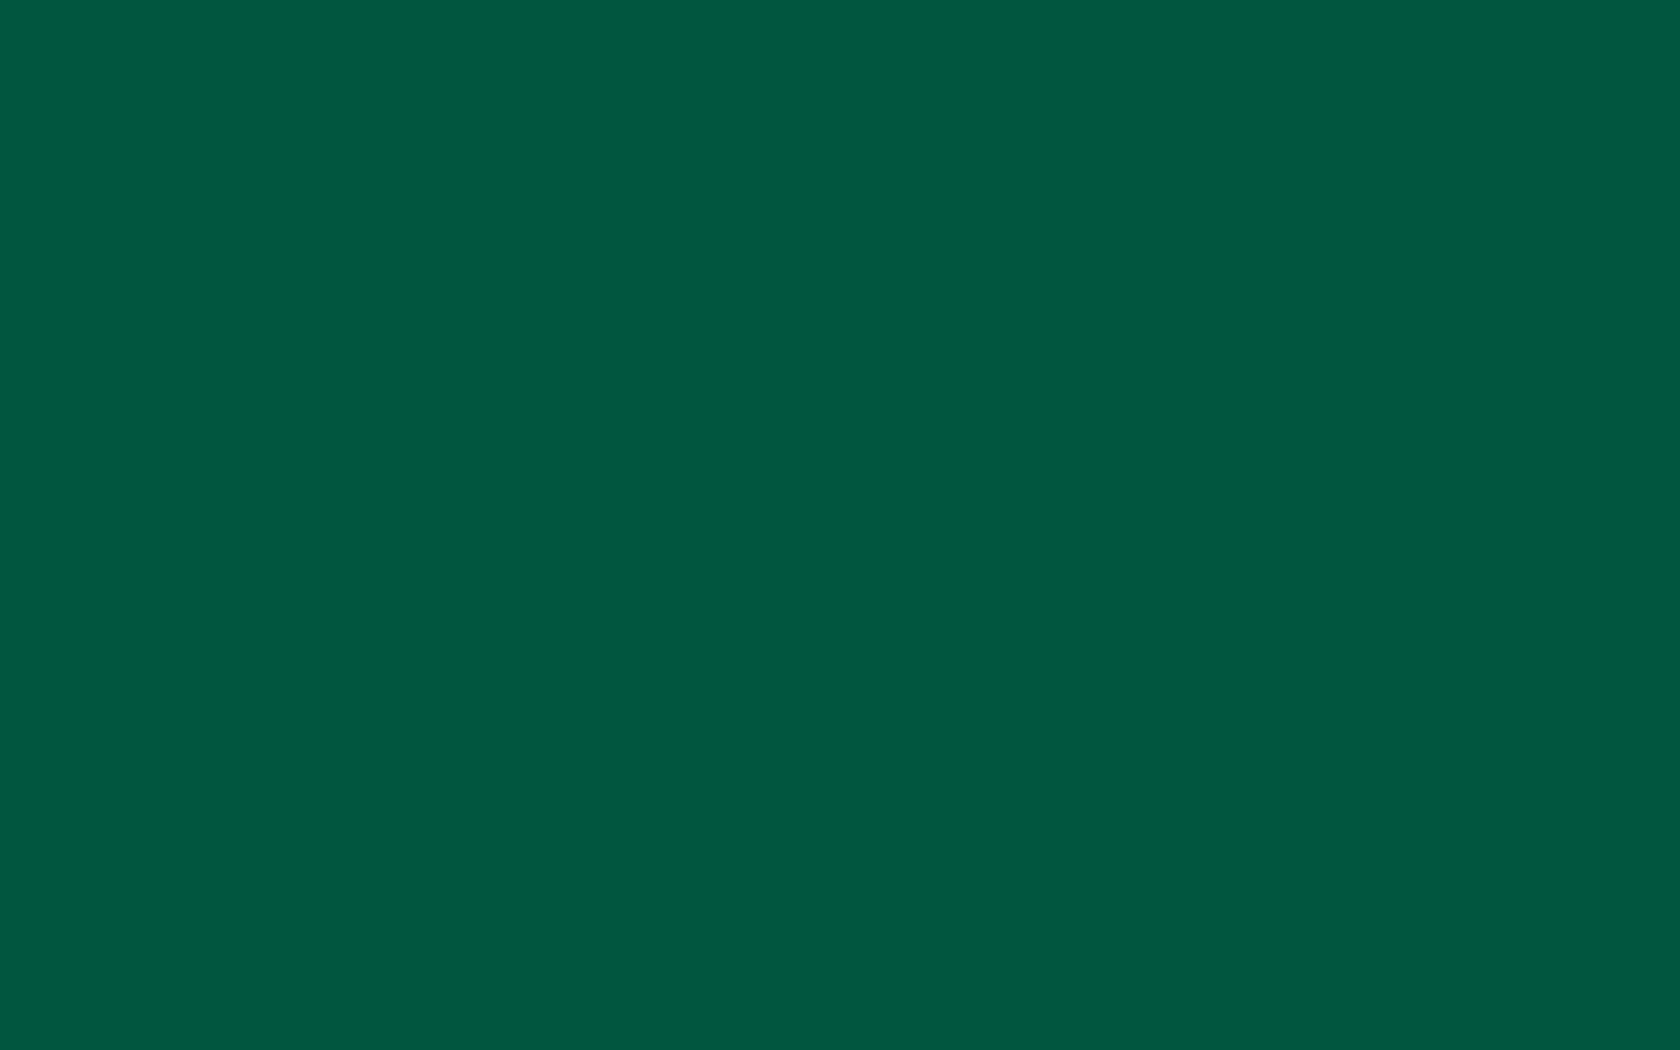 1680x1050 Sacramento State Green Solid Color Background